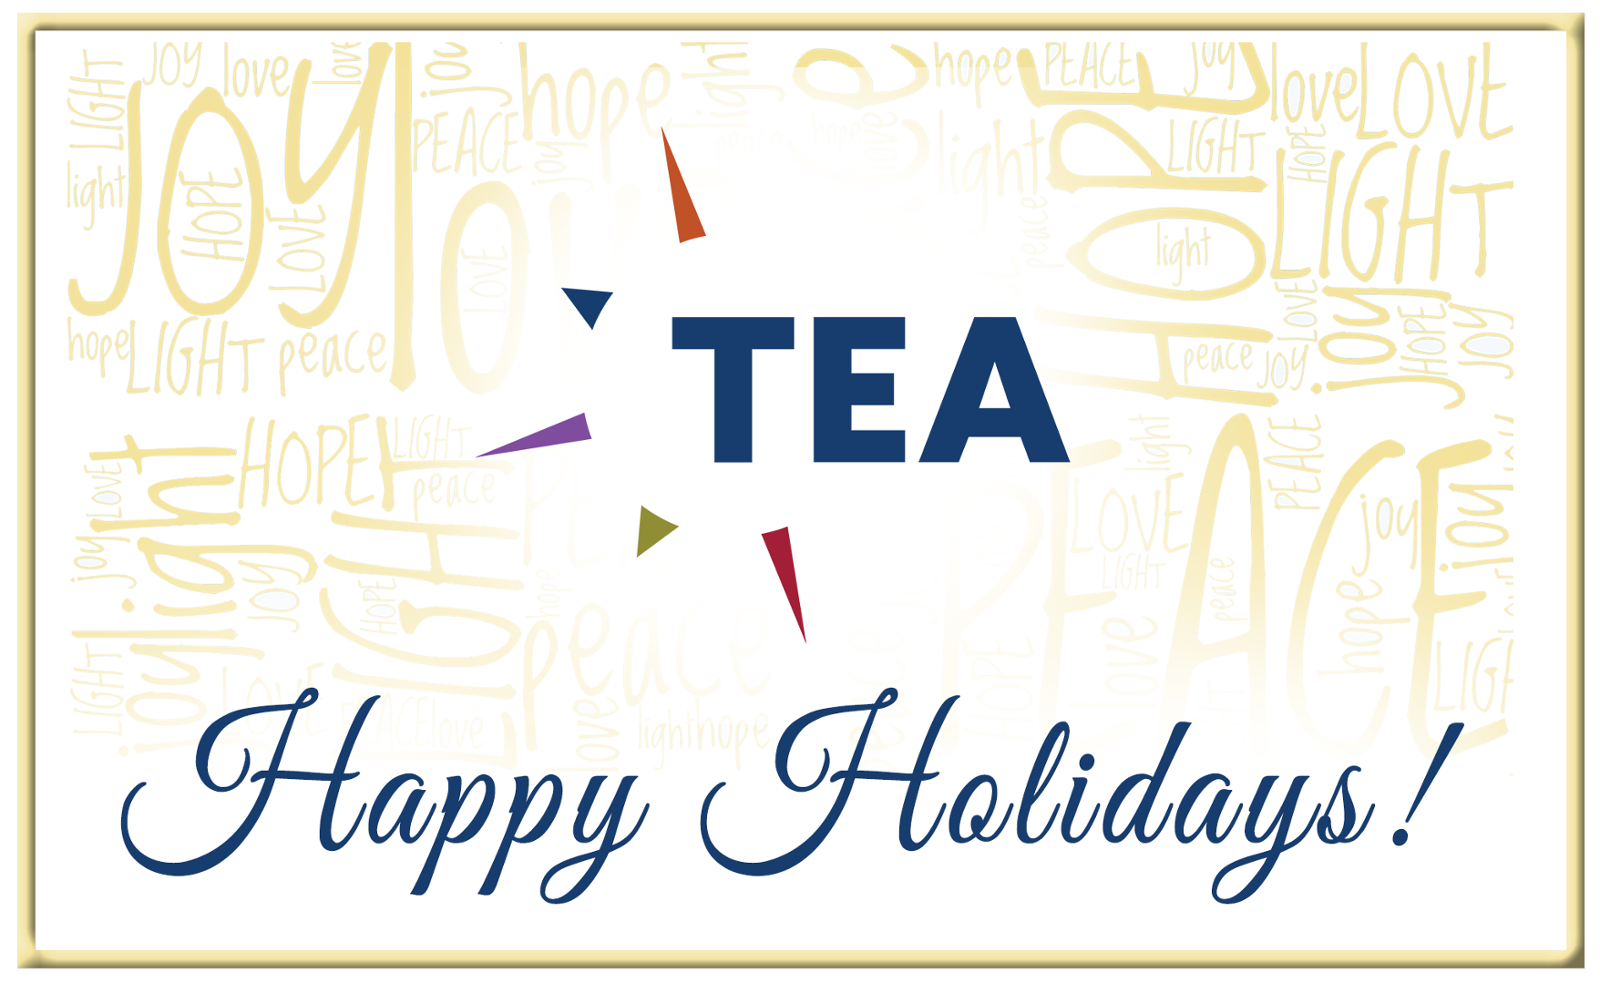 TEA holiday greeting and hours, Dec 2020-Jan 2021